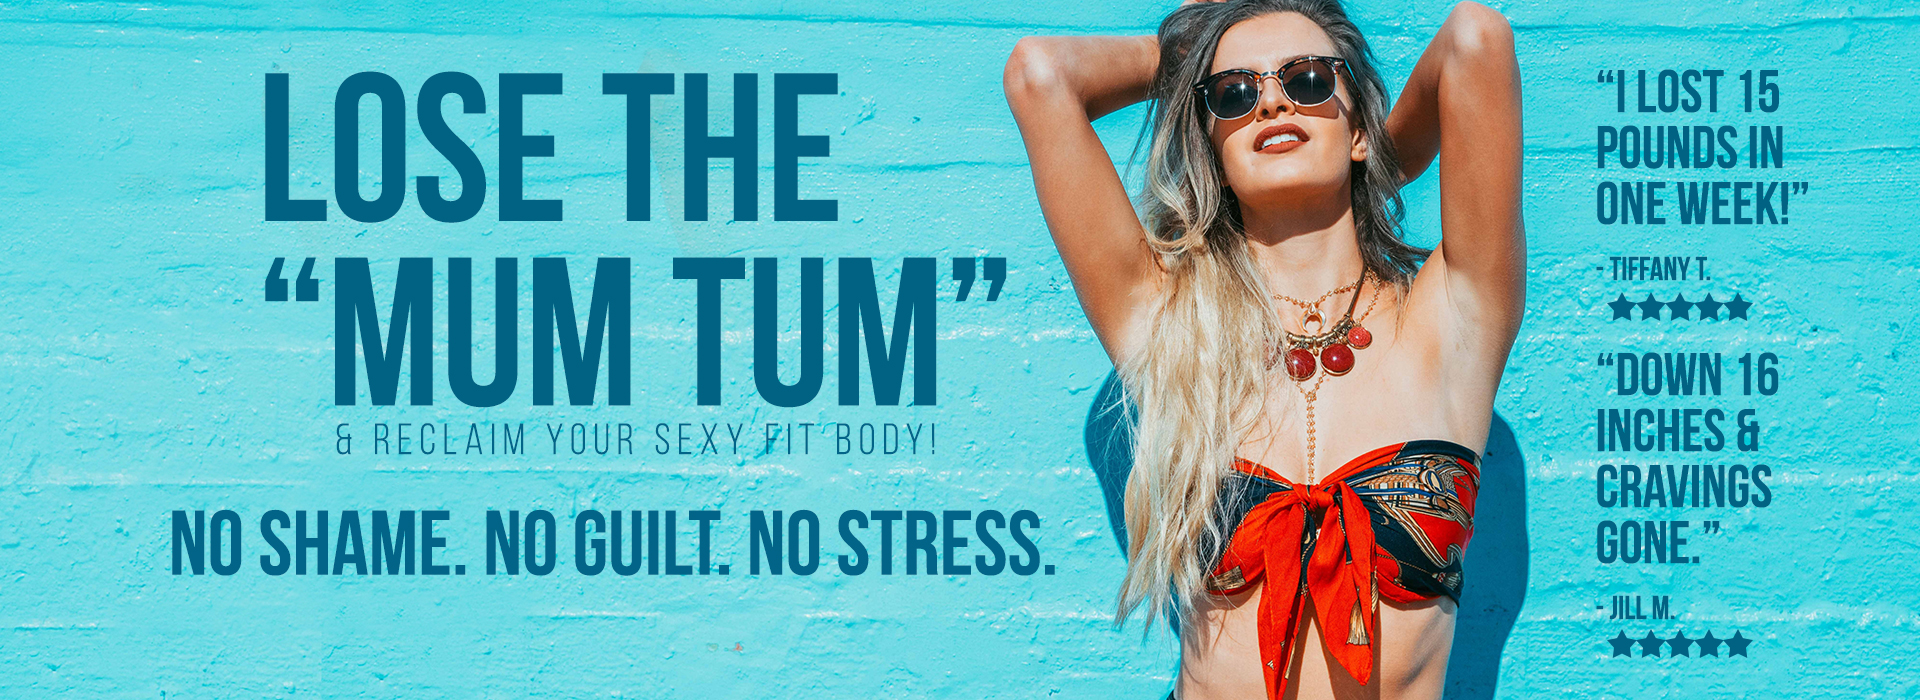 Lose the Mum Tum with Fit Body Weight Loss